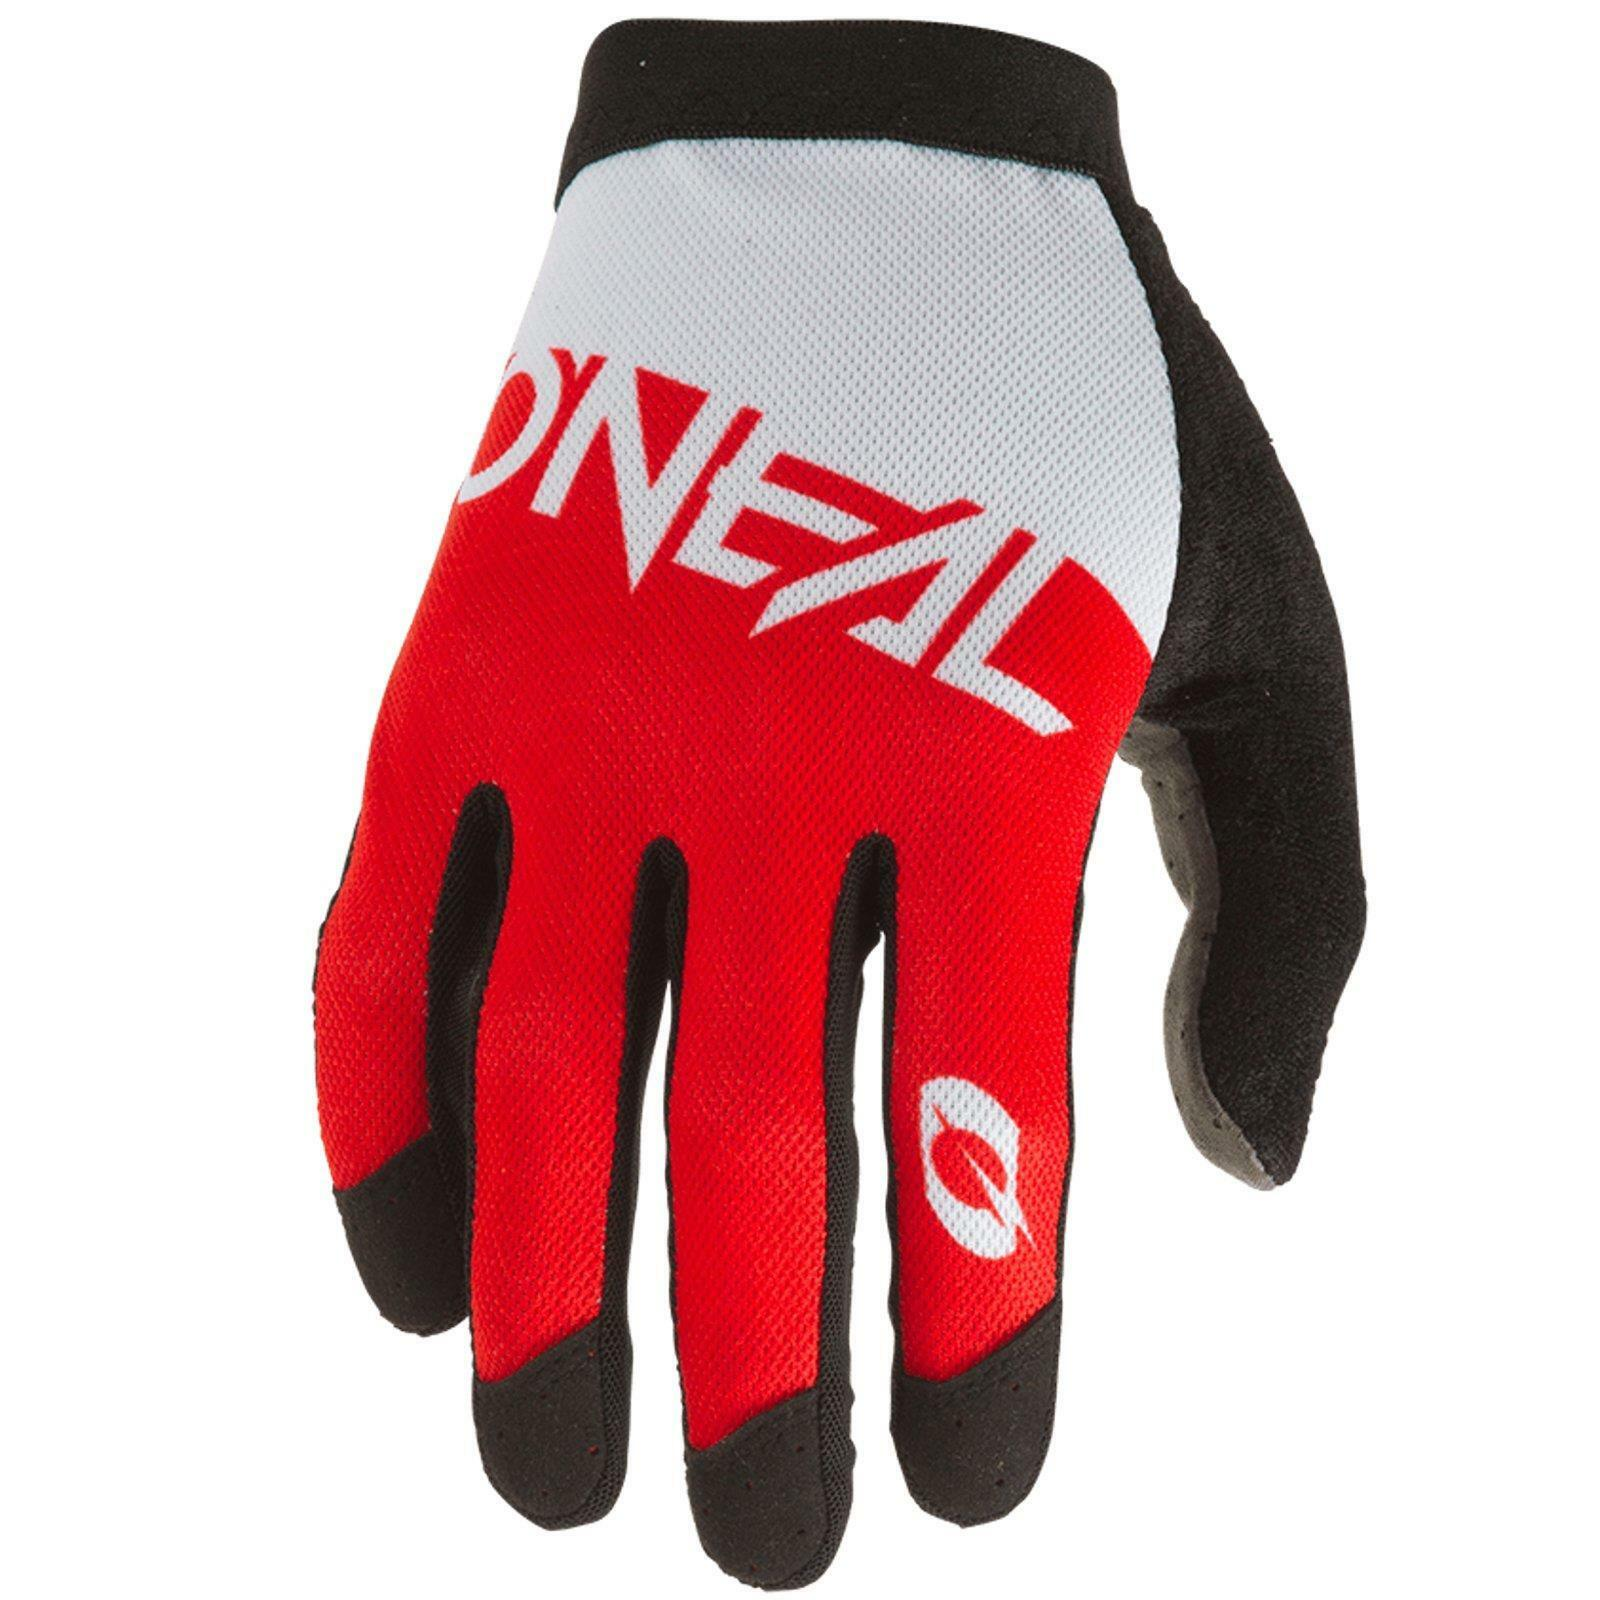 ONeal AMX Altitude Motocross MX MTB Handschuhe Mountain Mountain Mountain Bike Trail Freeride DH d7ee15